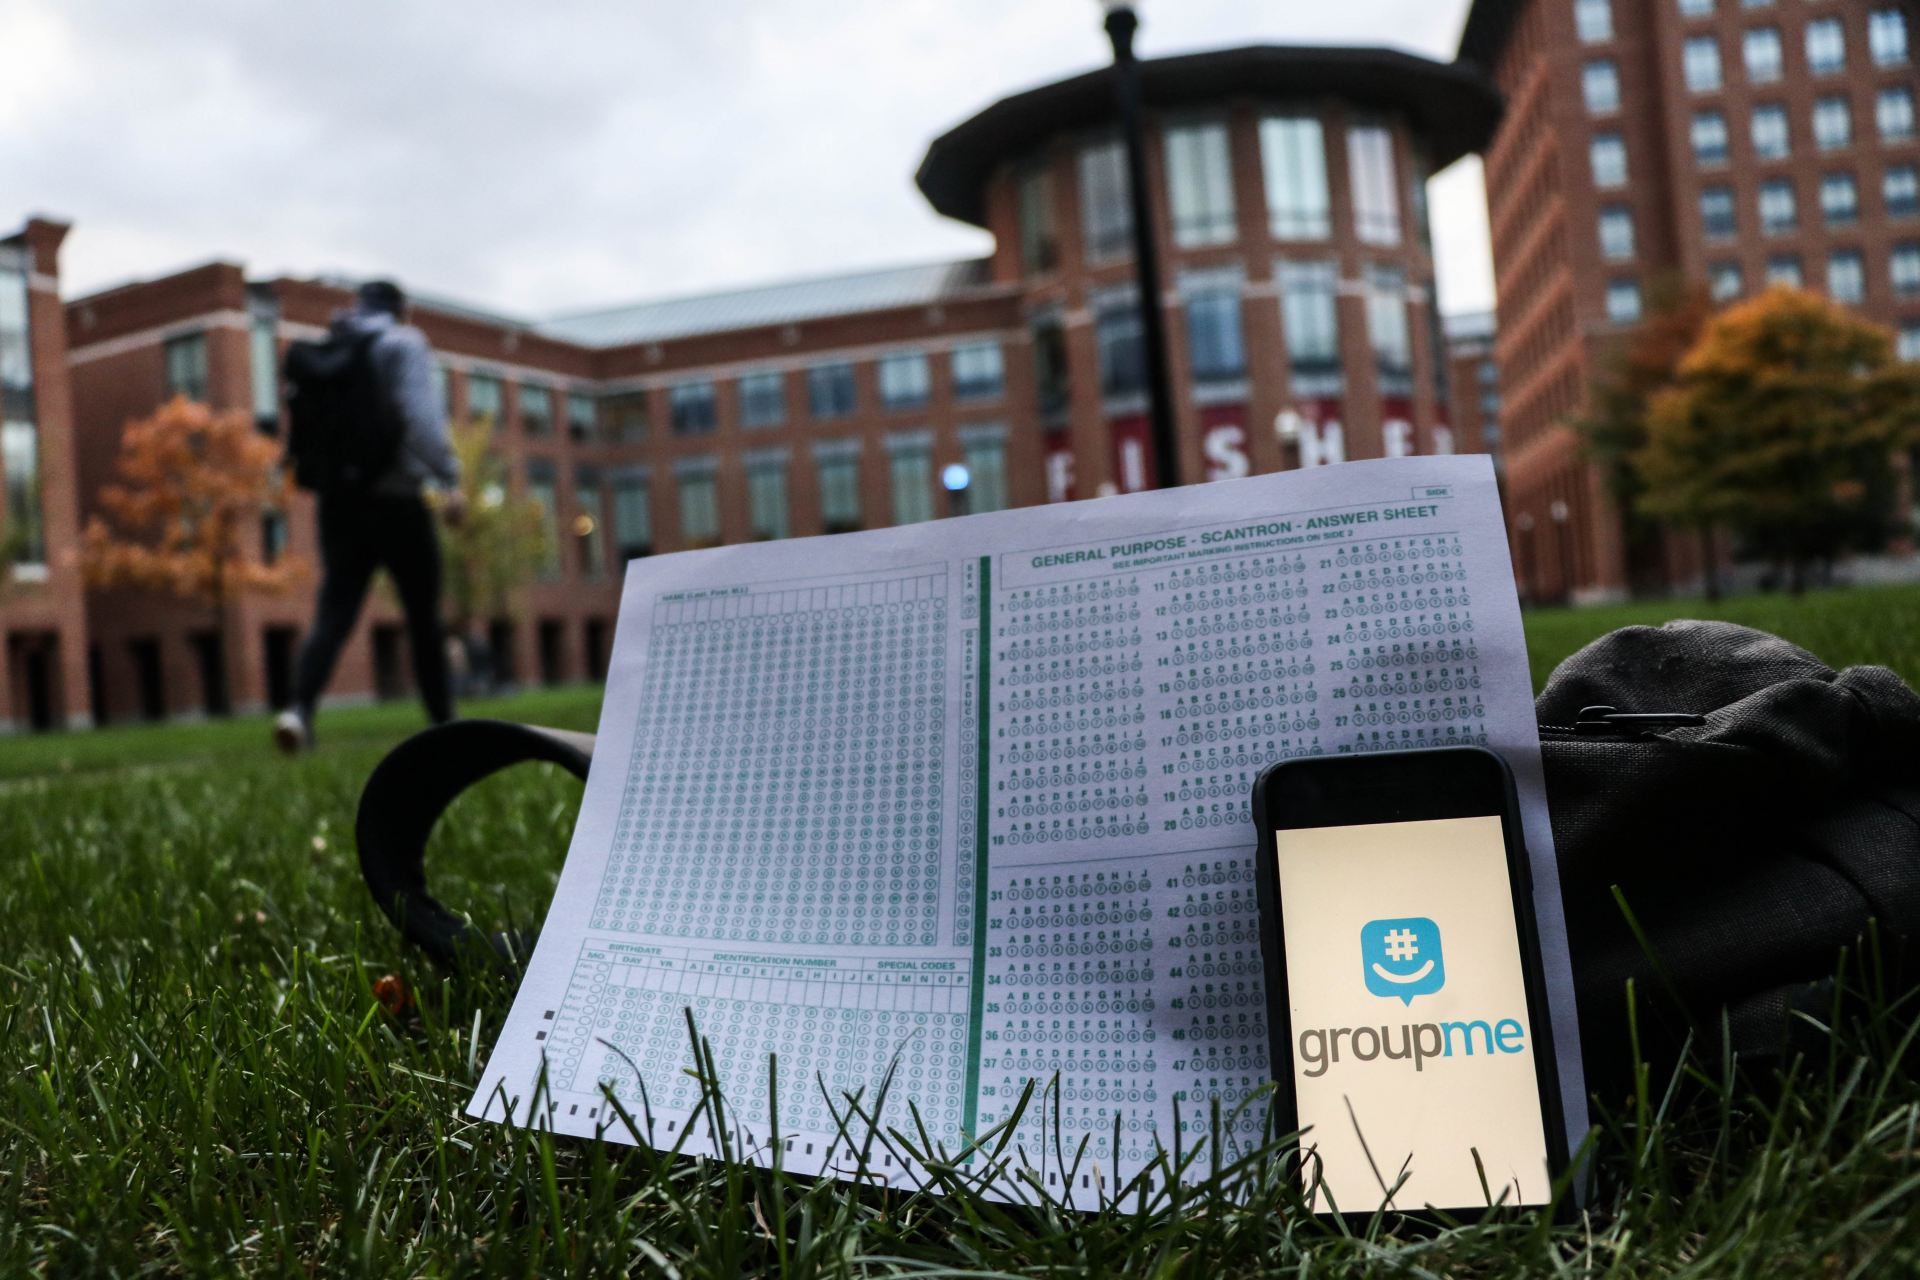 Use of GroupMe app leads to code of conduct violations